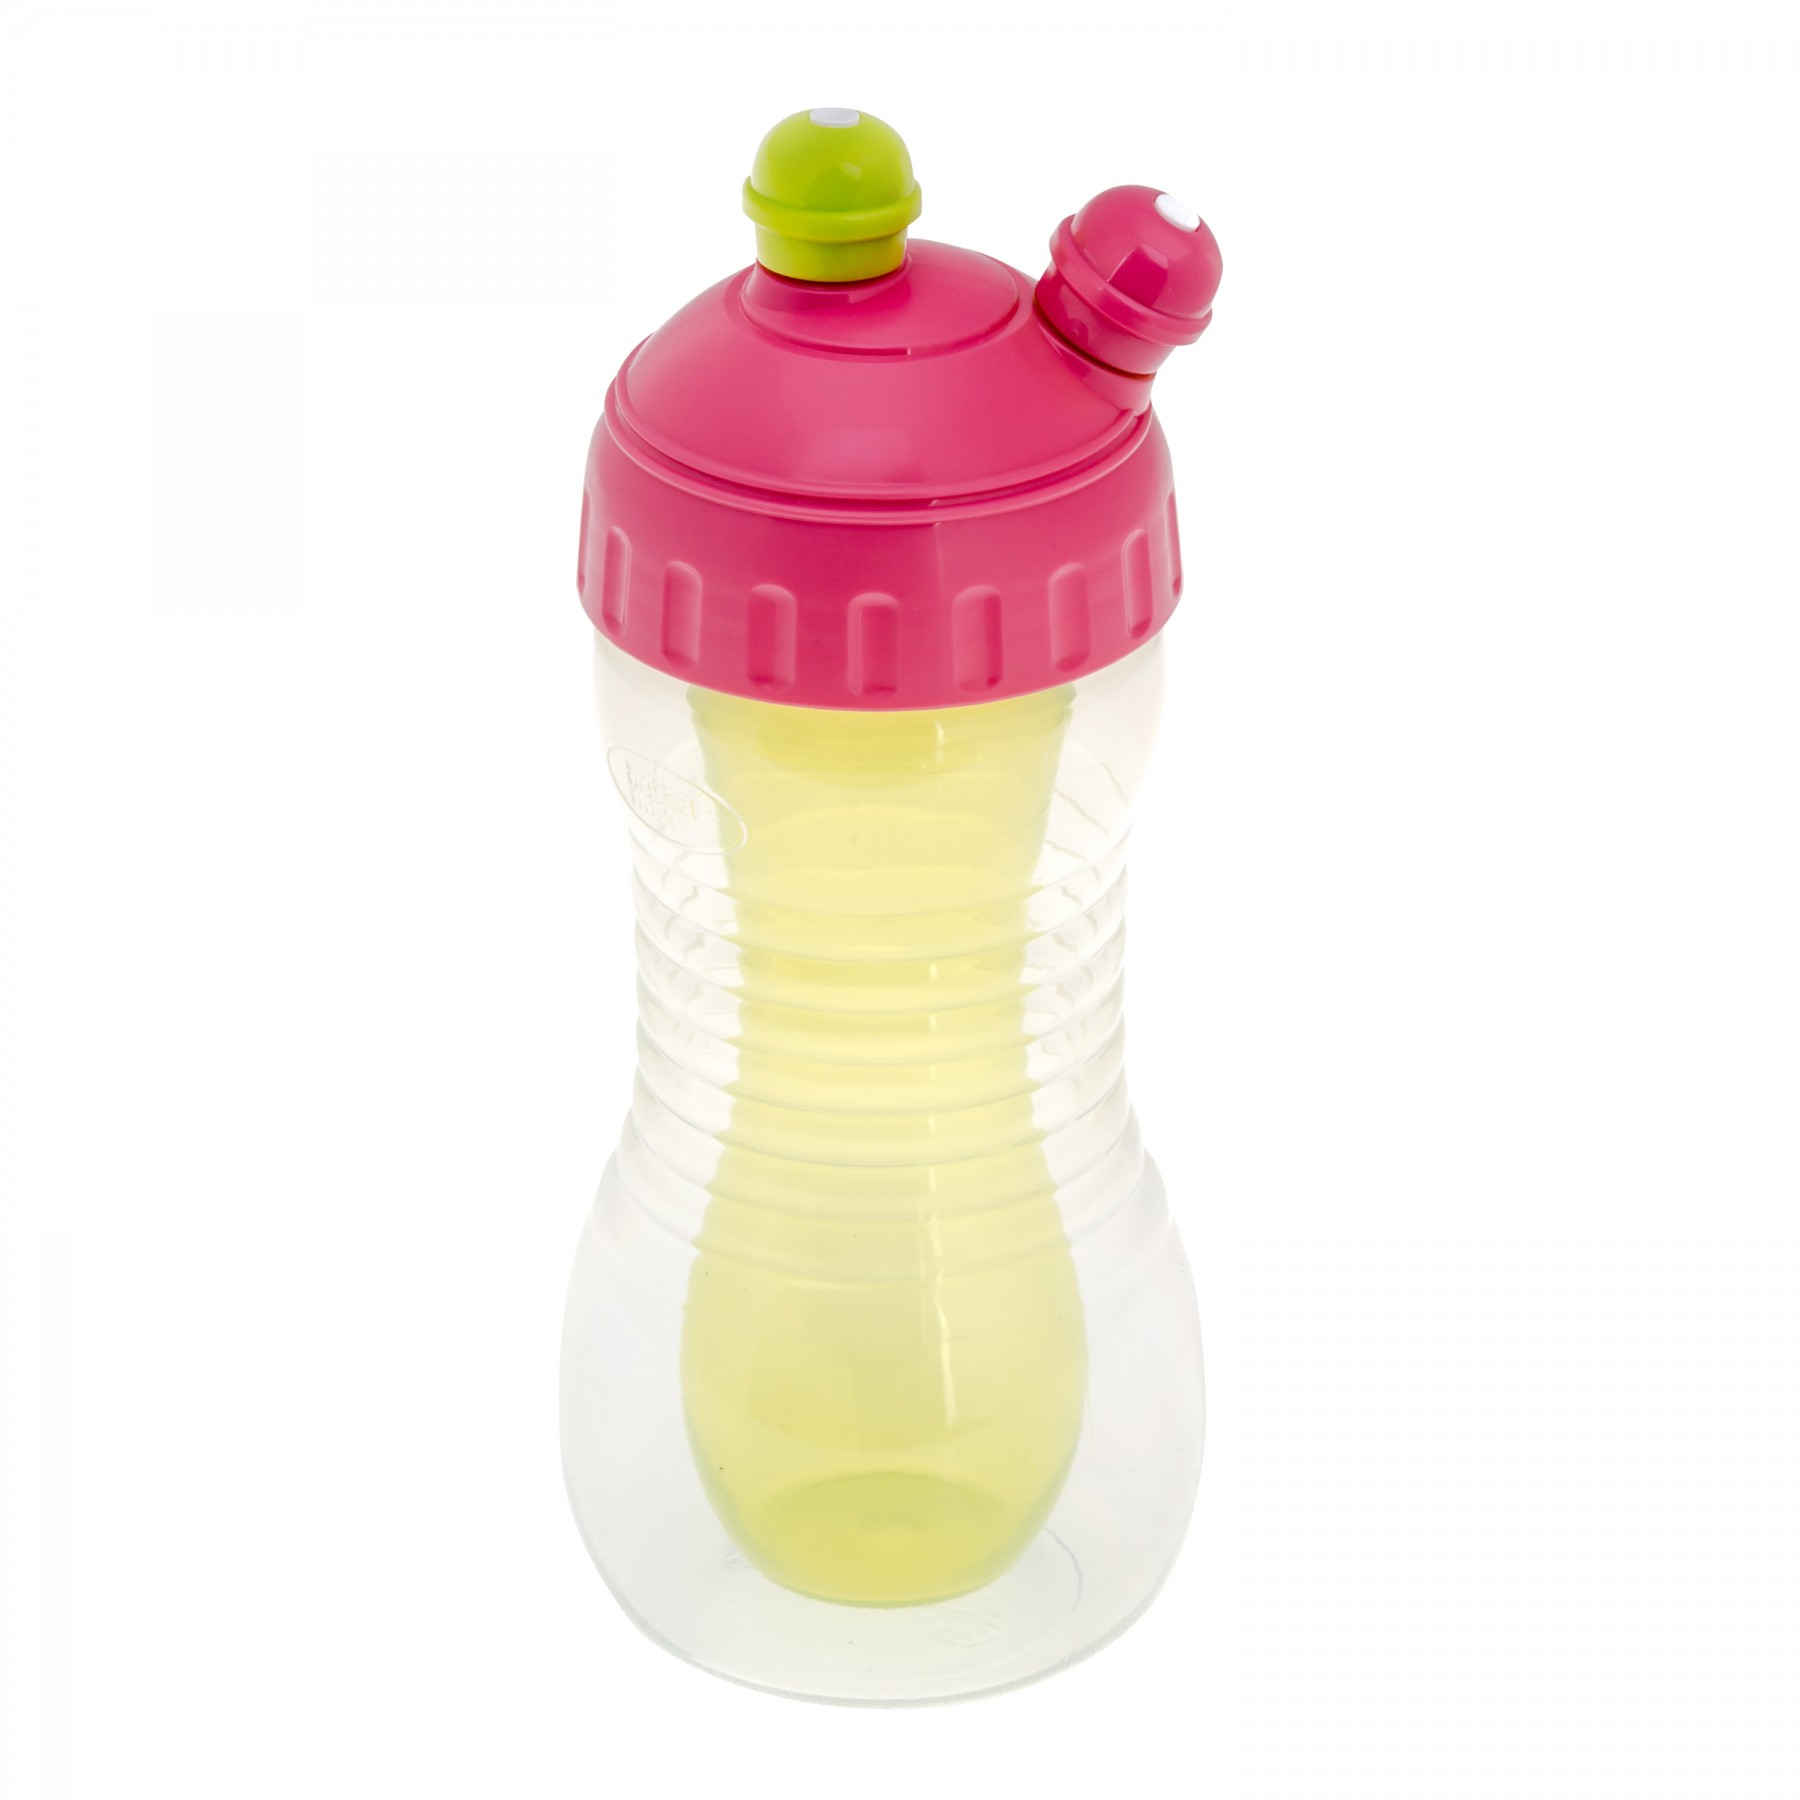 Brother Max – 2 Drinks Cooler Sports Bottle – Pink/Green